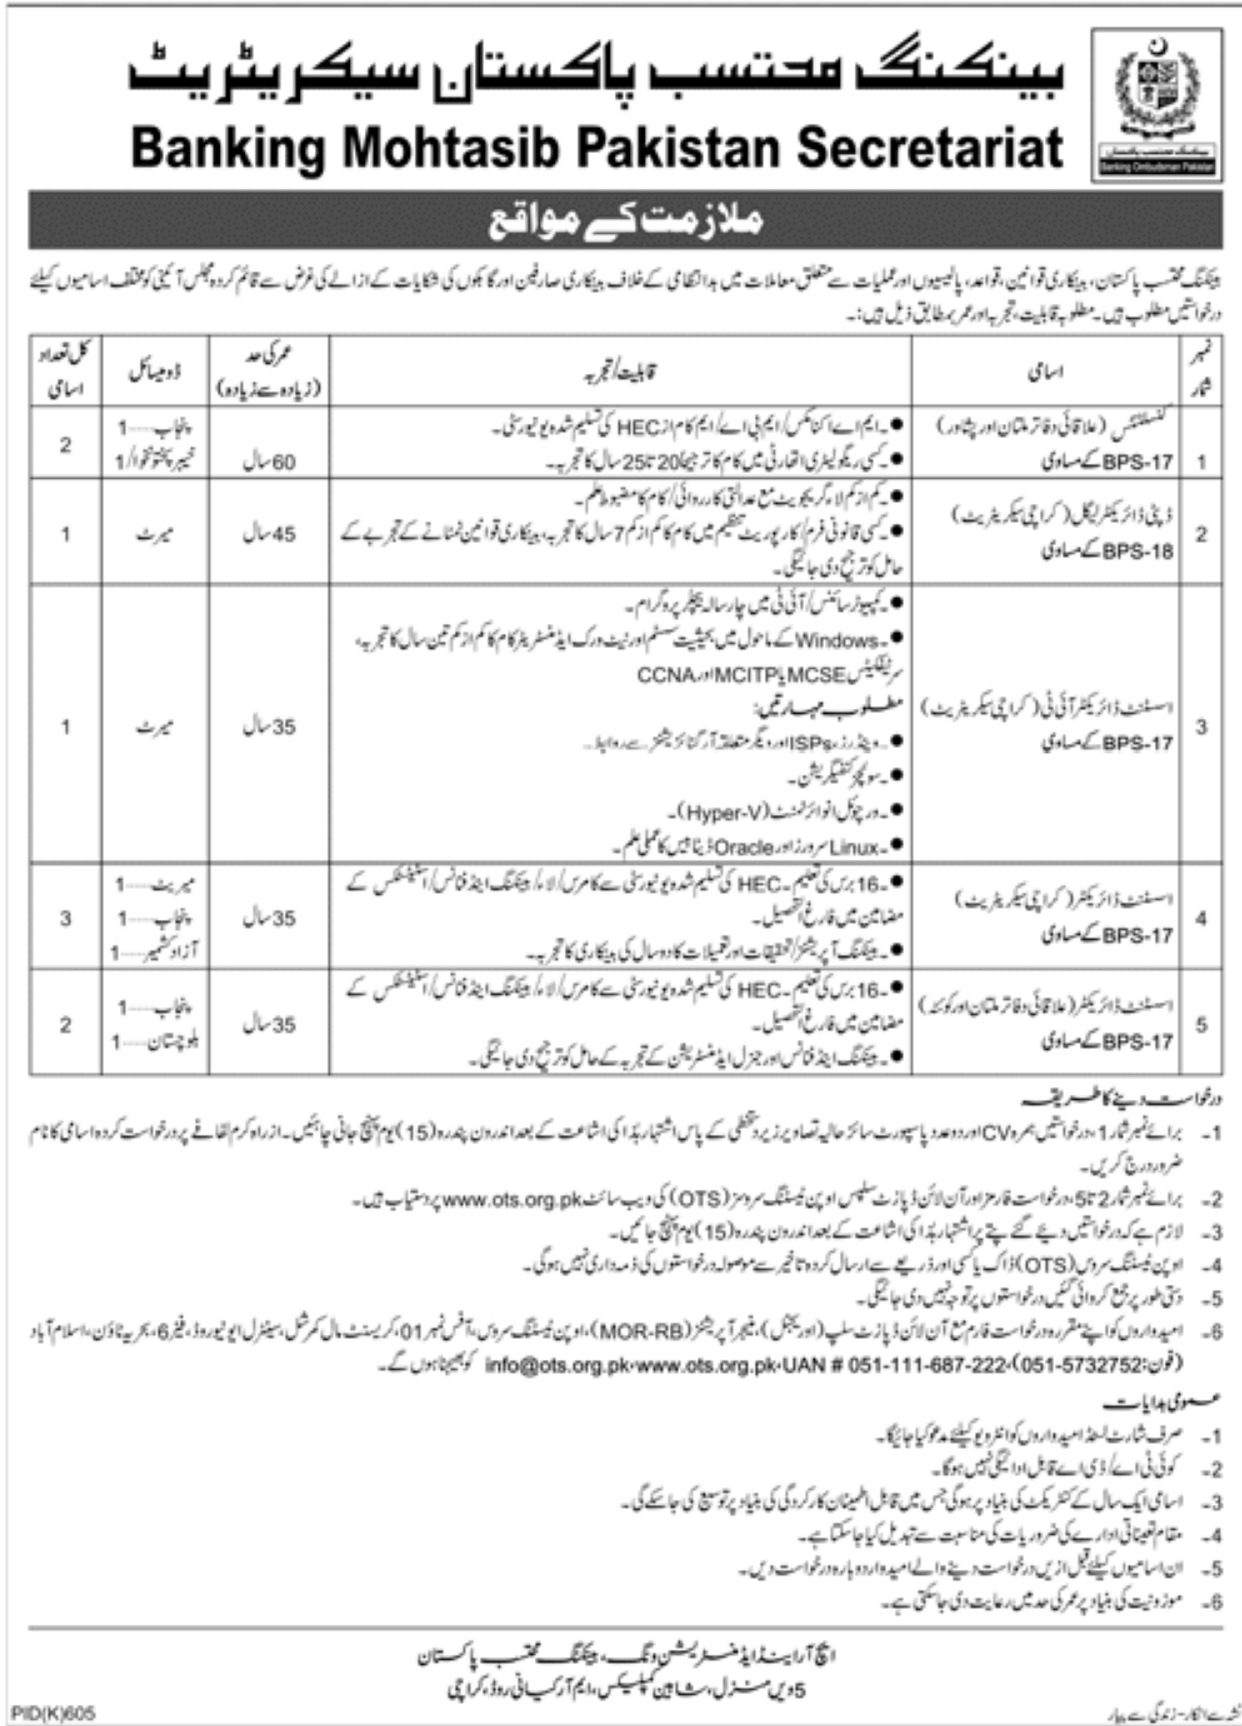 Banking Mohtasib Pakistan Secretariat Jobs 2019 Download OTS Application Form